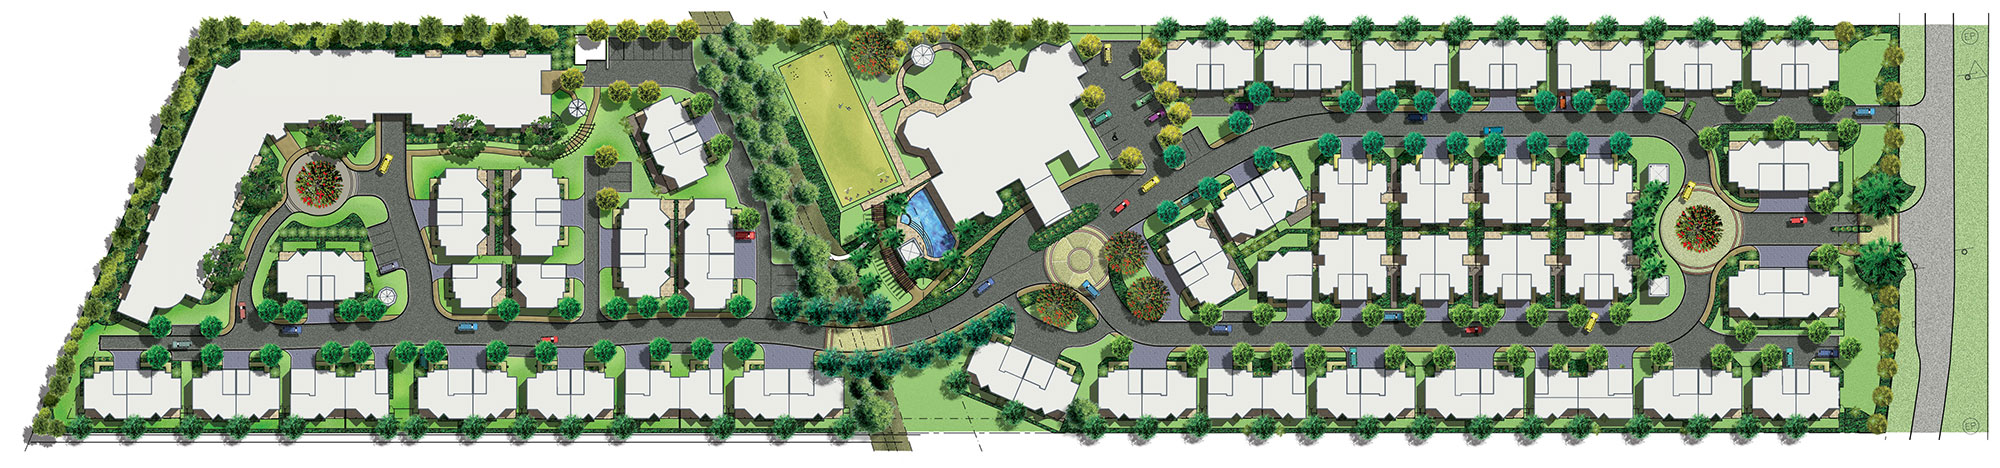 Beachmere Sands Landscape Masterplan